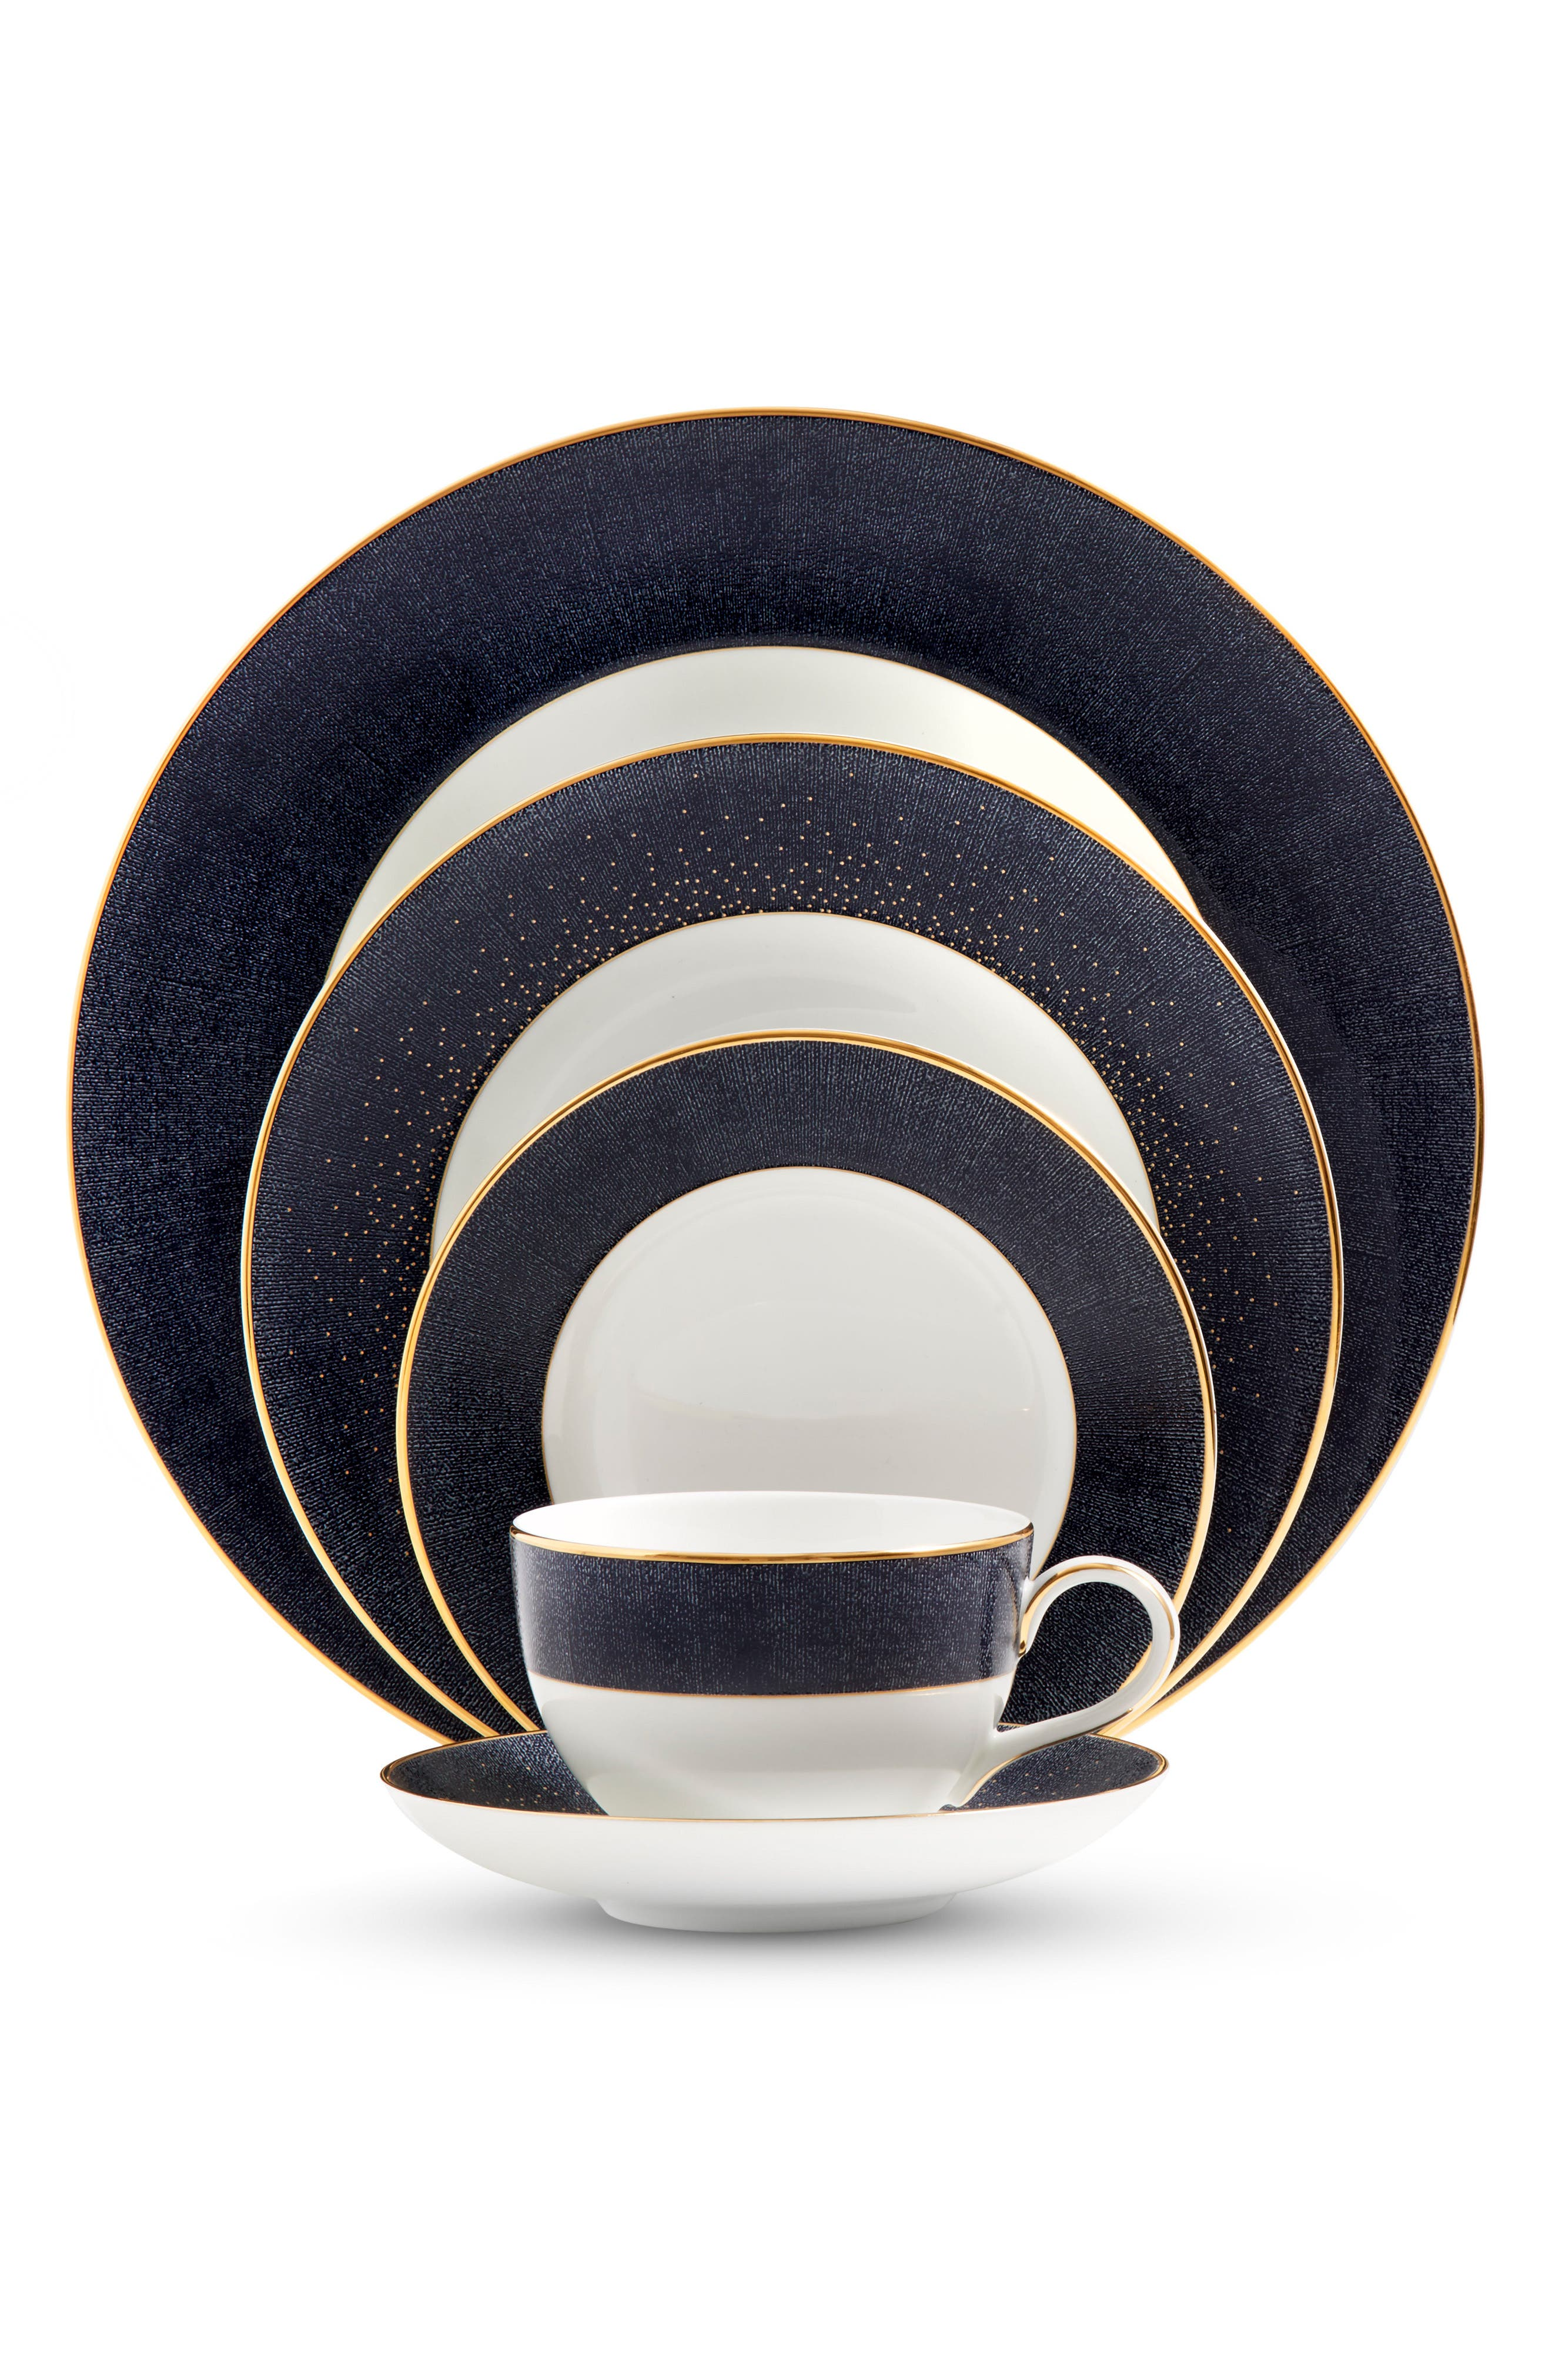 Alternate Image 1 Selected - Monique Lhuillier Waterford Stardust Night 5-Piece Bone China Dinnerware Place Setting